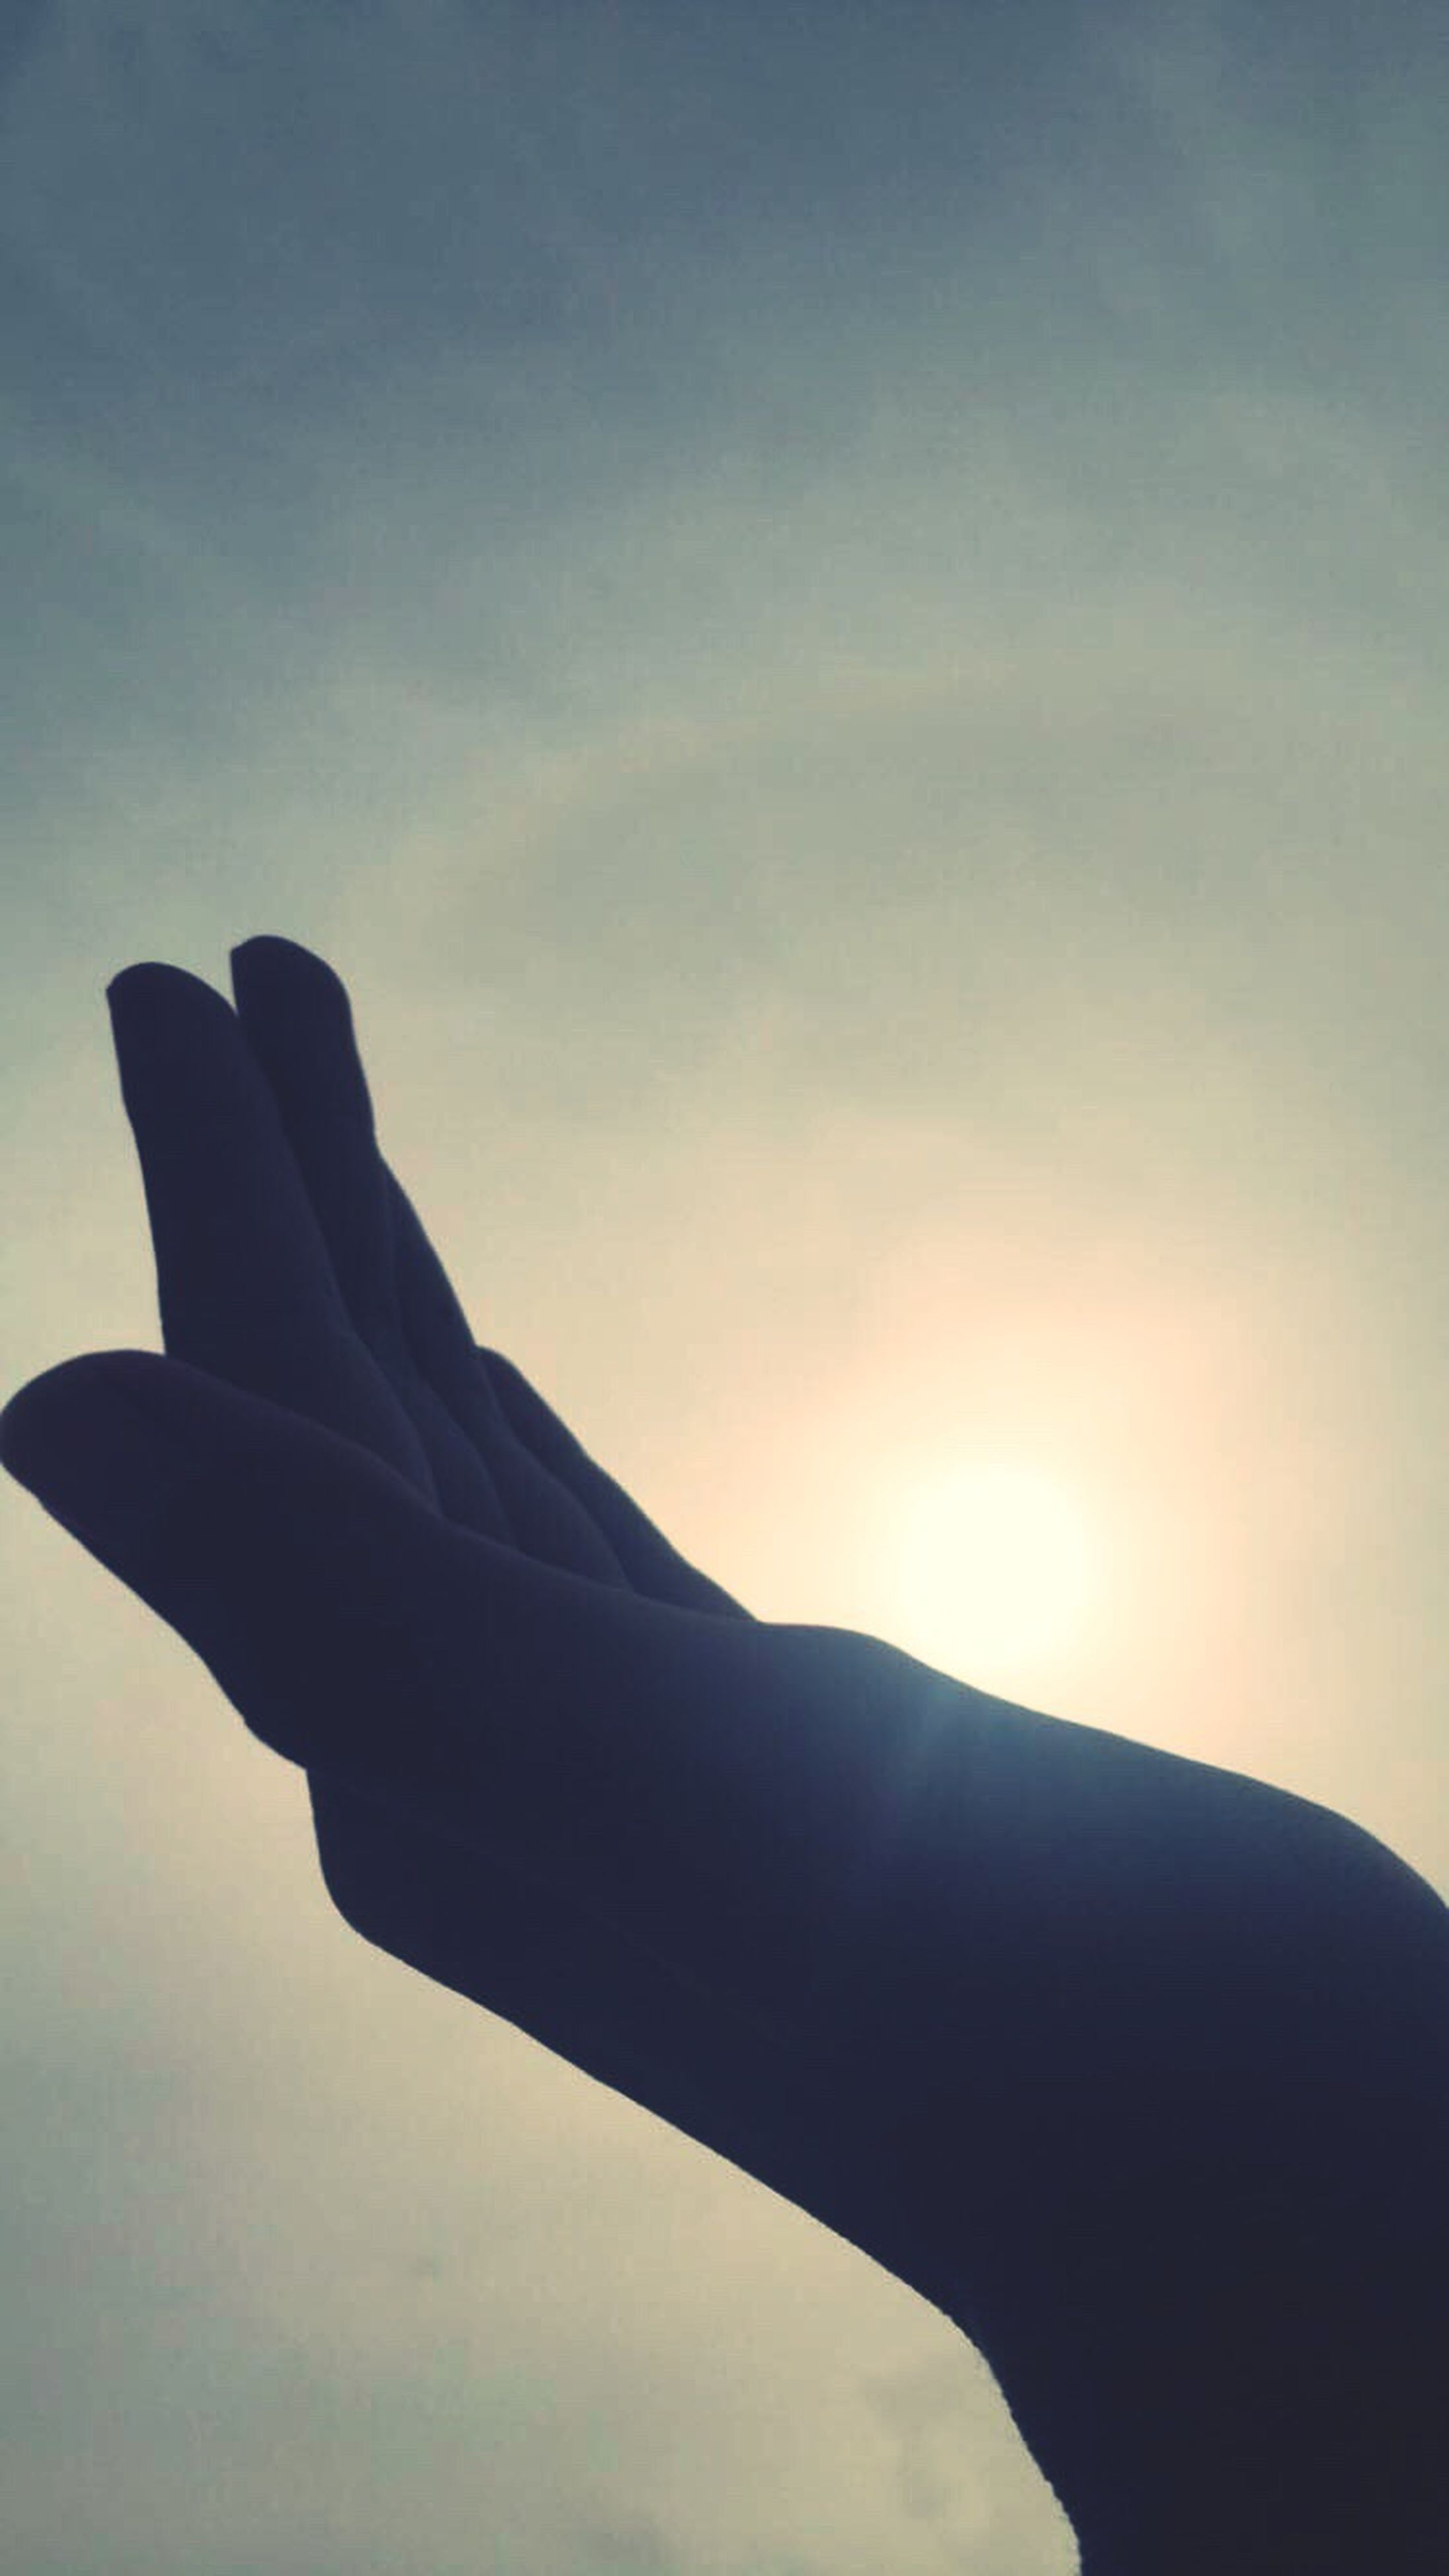 human hand, human body part, human finger, sky, close-up, one person, people, outdoors, adult, adults only, day